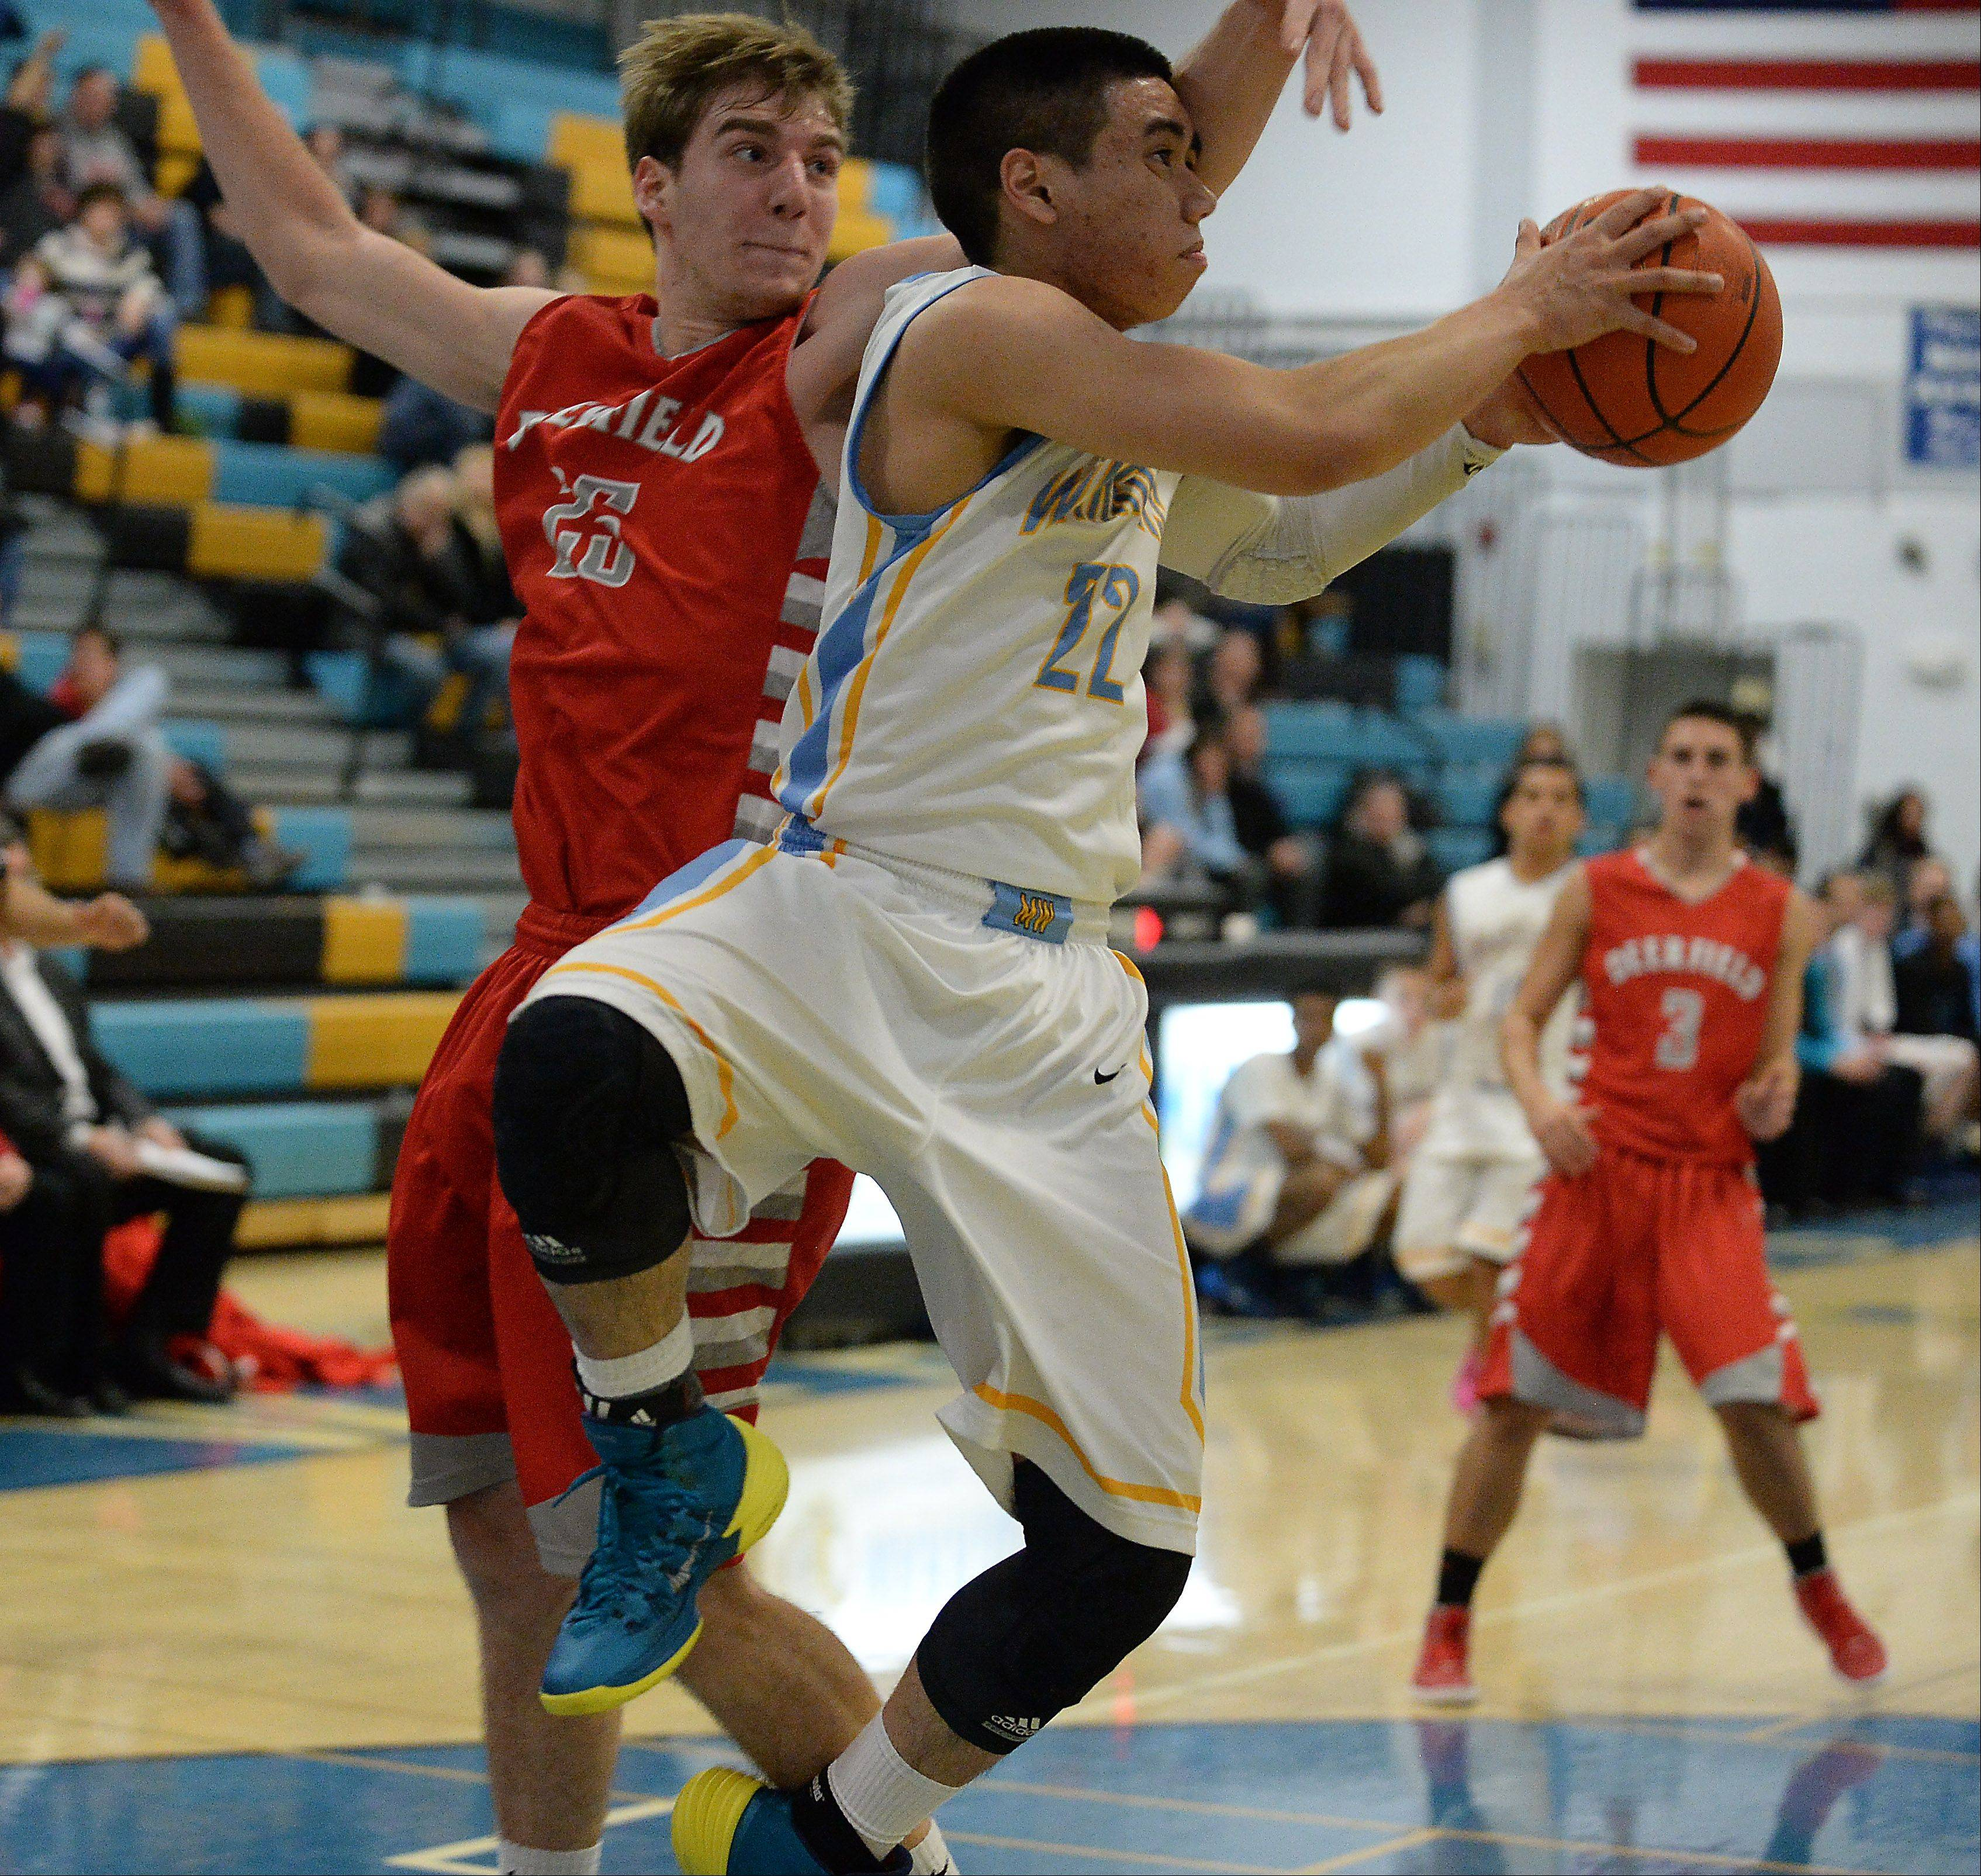 Maine West's Joel Ferraren (22) goes to the basket as Deerfield's Stefanos Fasianos (25) attempts to block his path on Friday at Maine West.